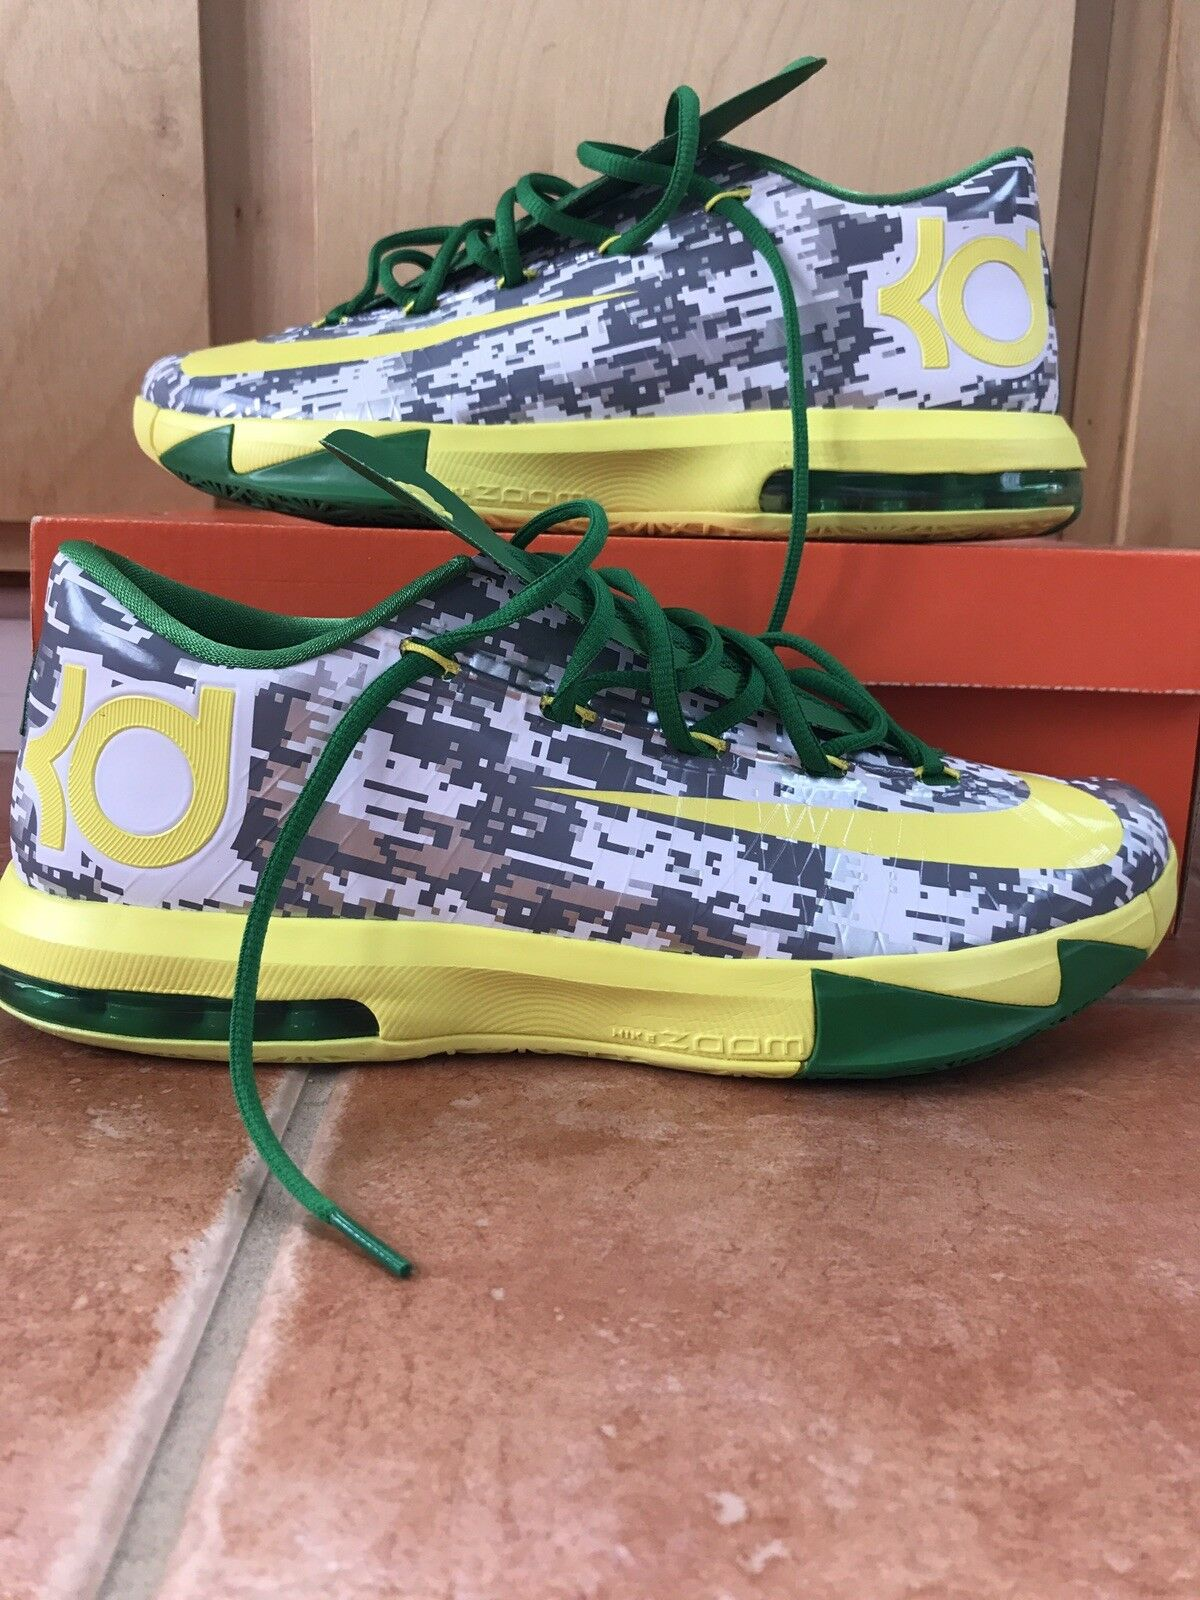 Kd 6 Oregon Armed Forces Classic Sample PE Size 12 VNDS